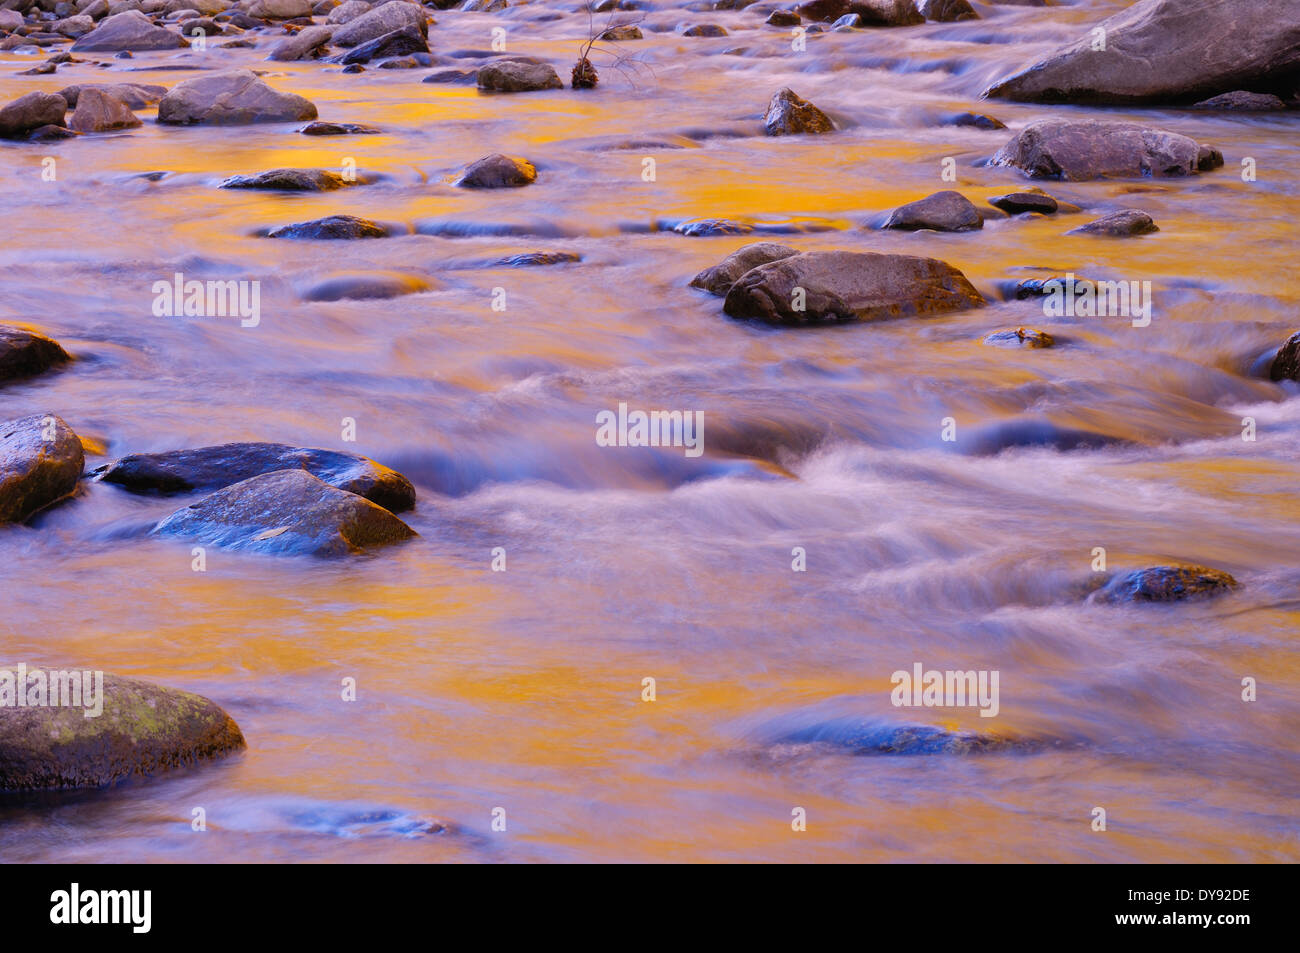 USA, Vermont, New England, Green Mountain National Forest, fall foliage  reflecting in water of brook - Stock Image